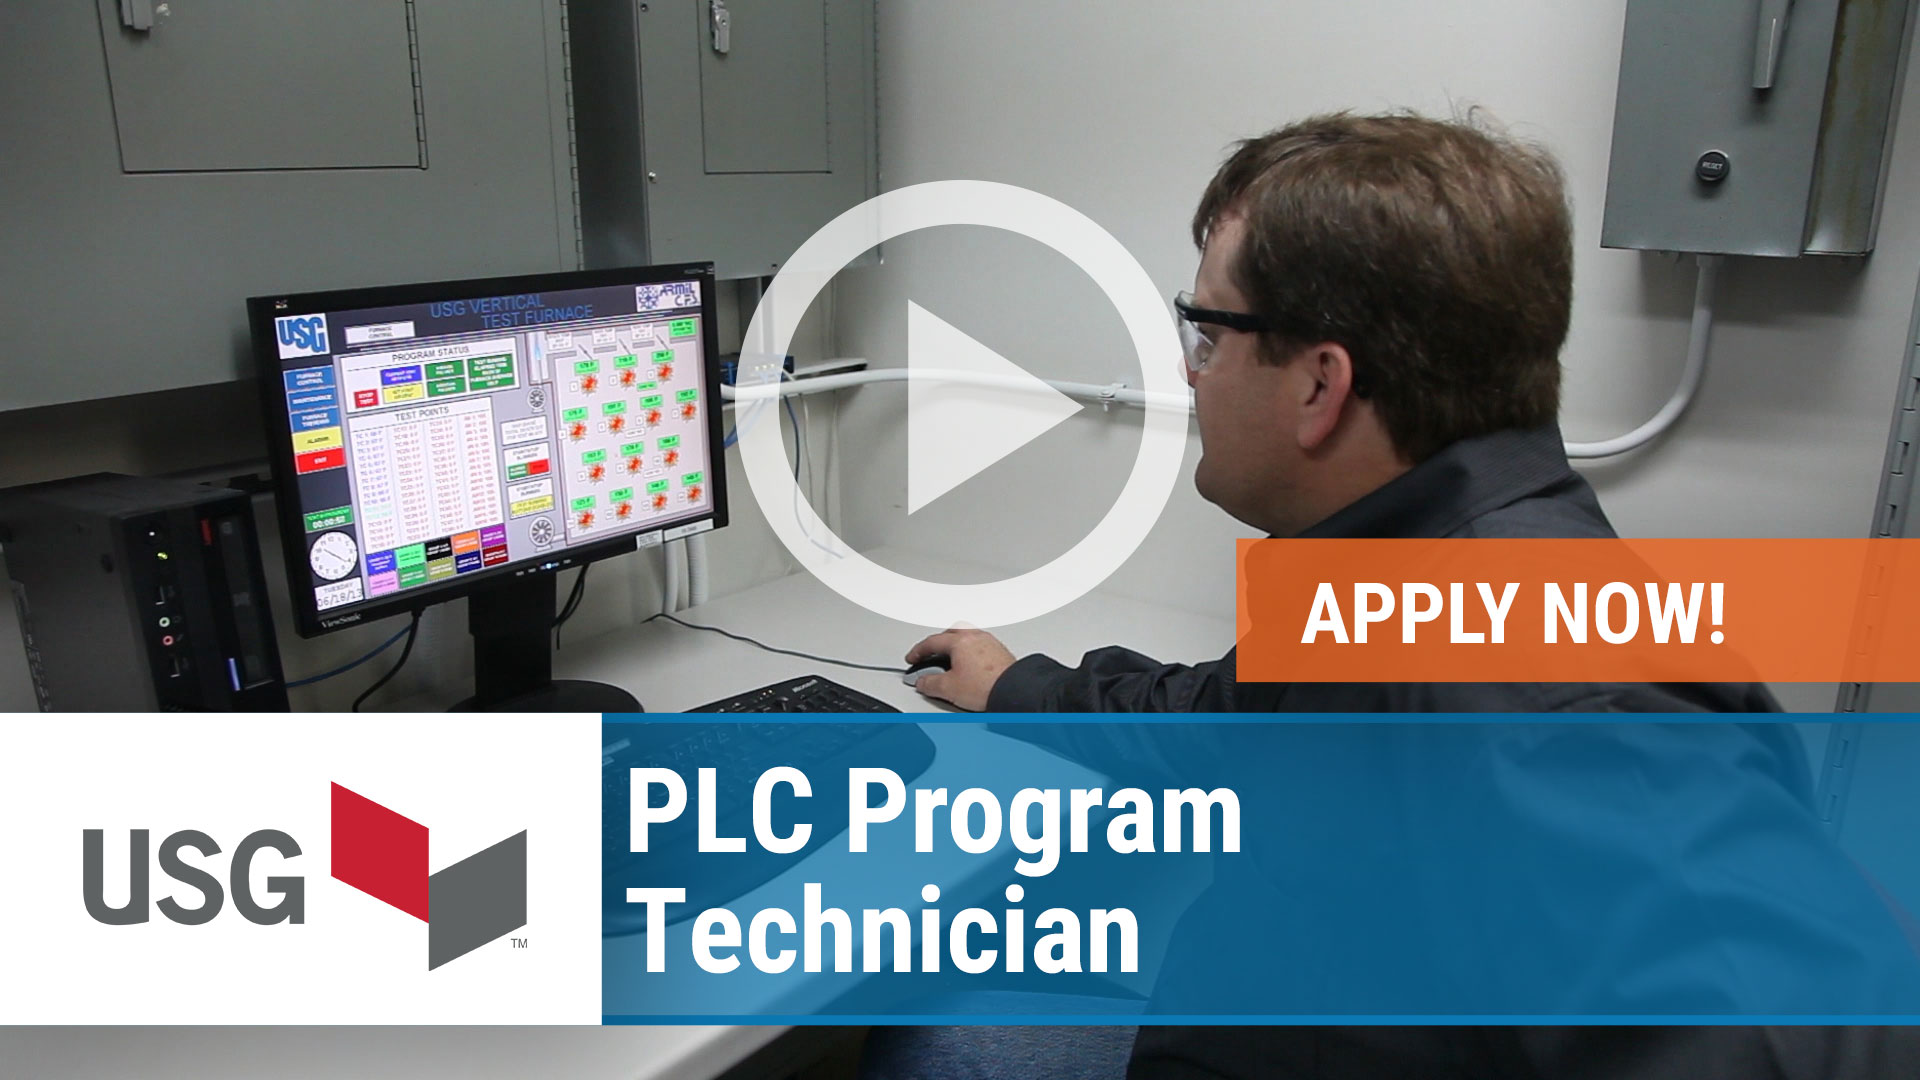 Watch our careers video for available job opening PLC Program Technician in Jacksonville, Florida